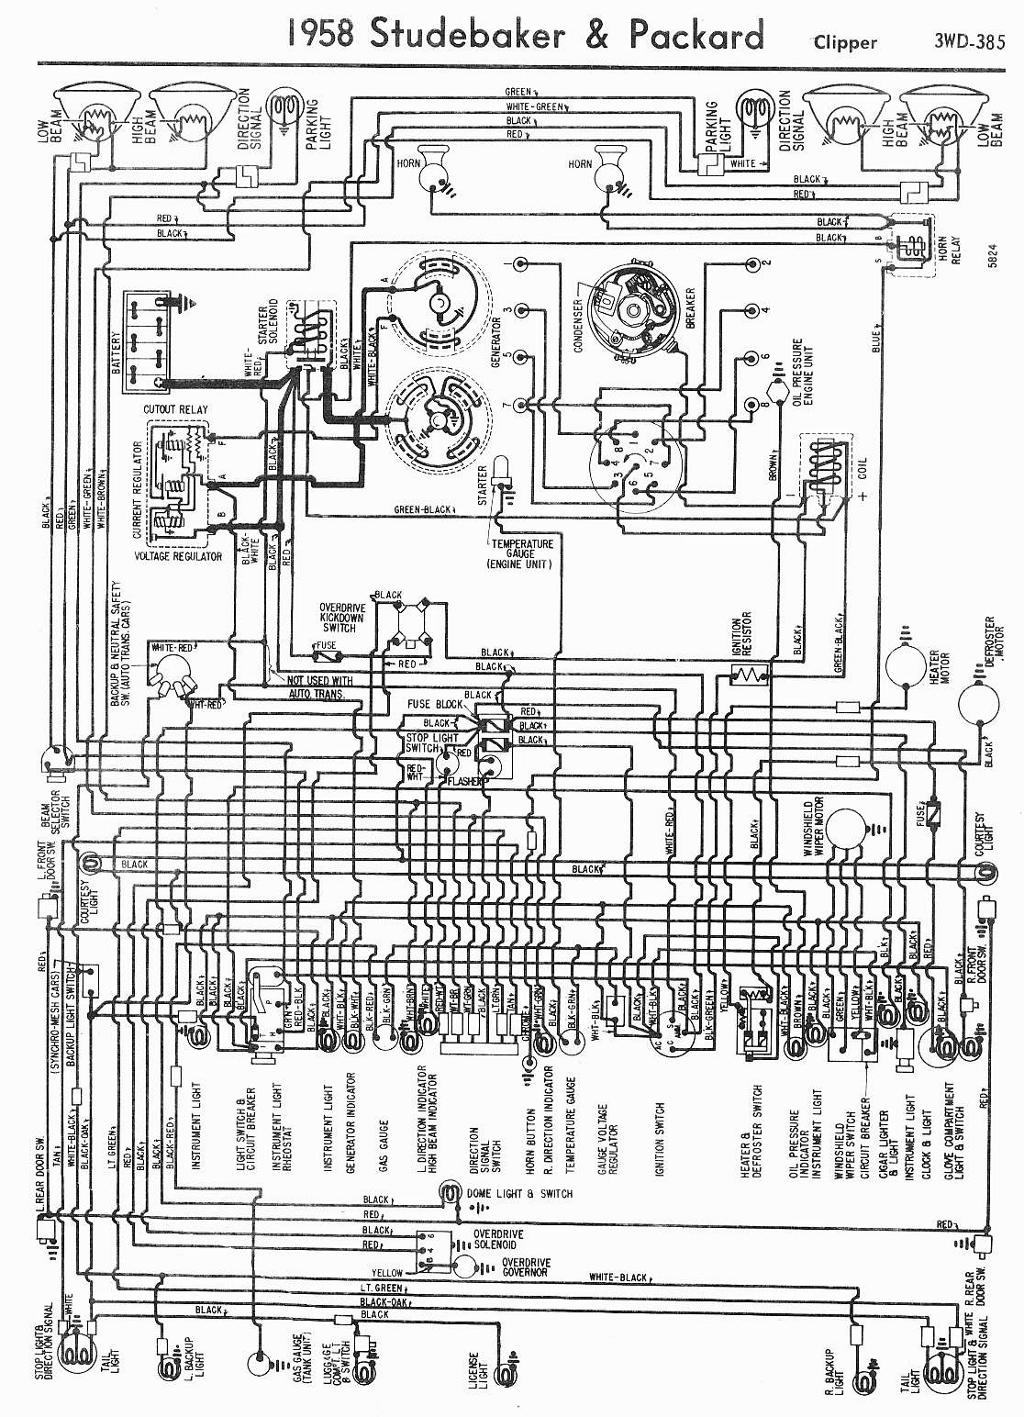 packard car manuals wiring diagrams pdf fault codes rh automotive manuals net